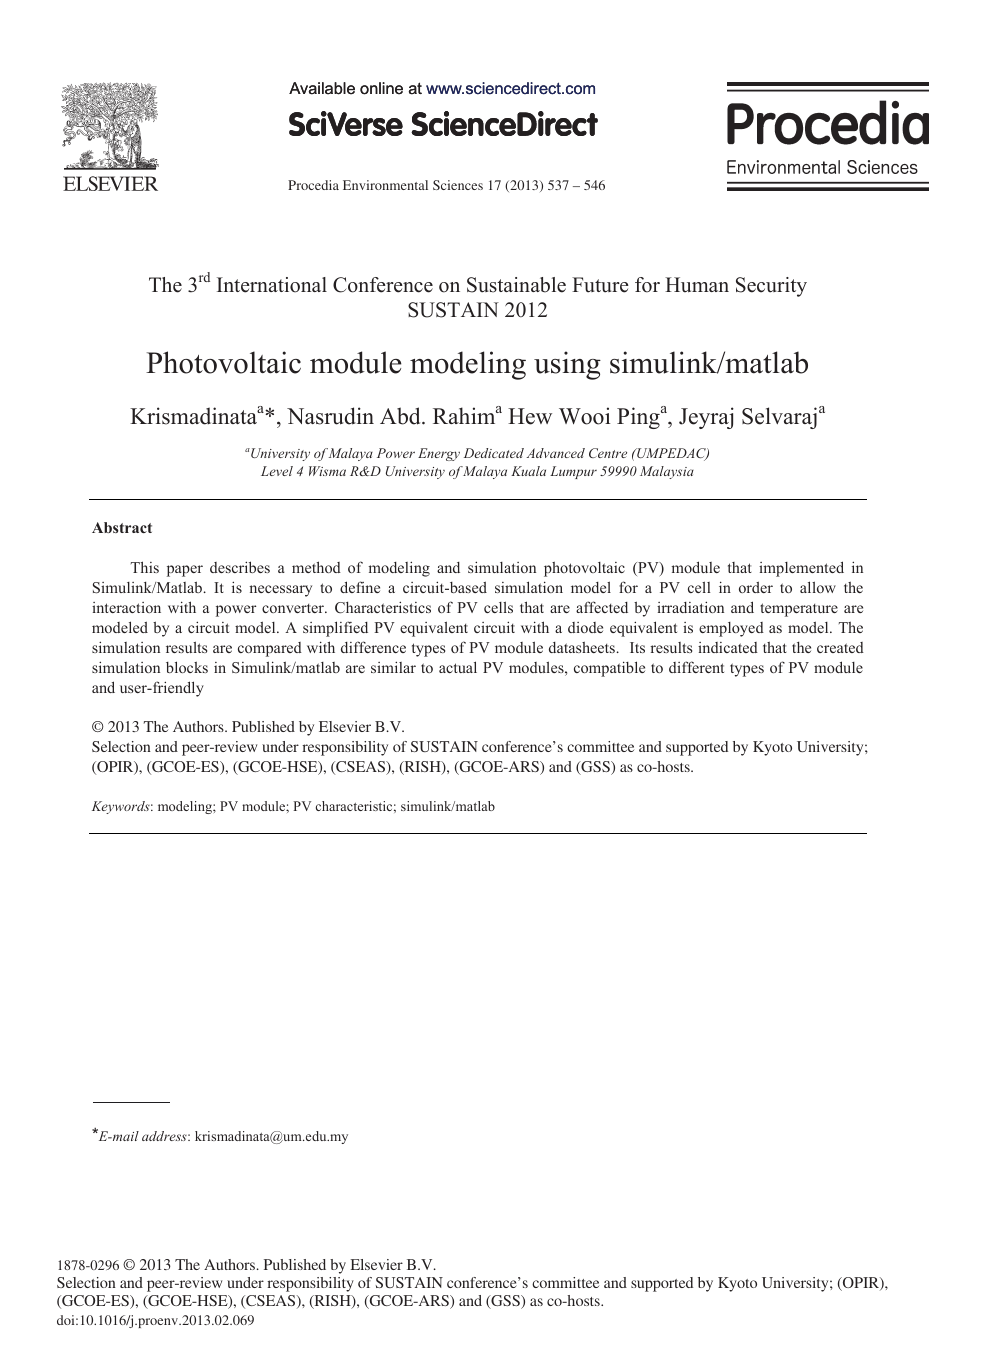 Photovoltaic Module Modeling using Simulink/Matlab – topic of